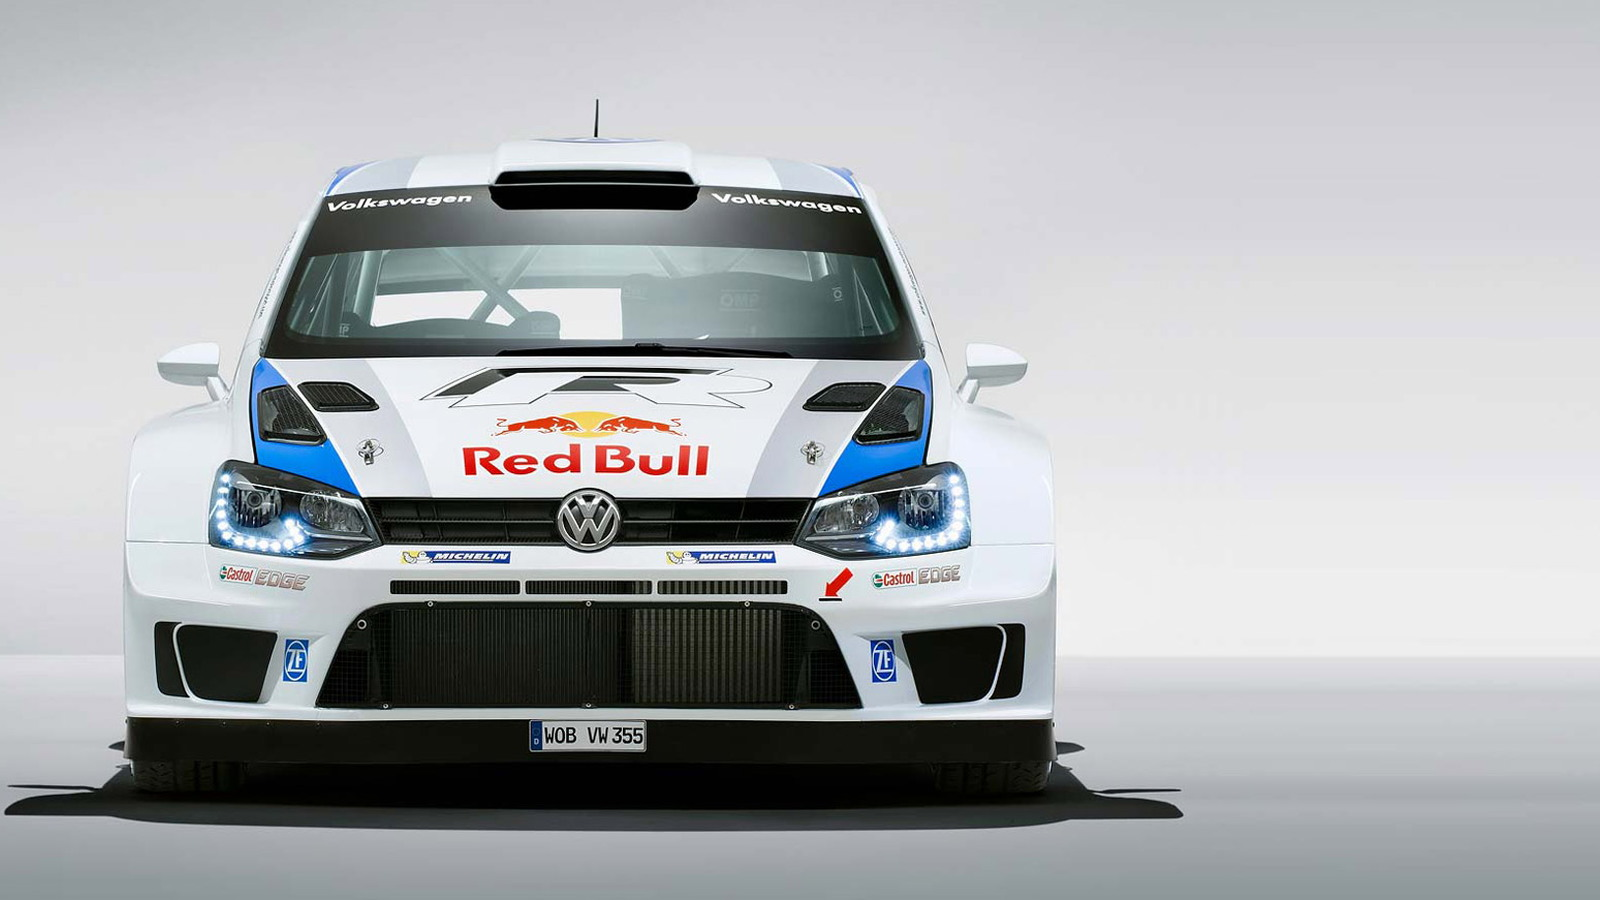 2013 Volkswagen Polo R WRC race car